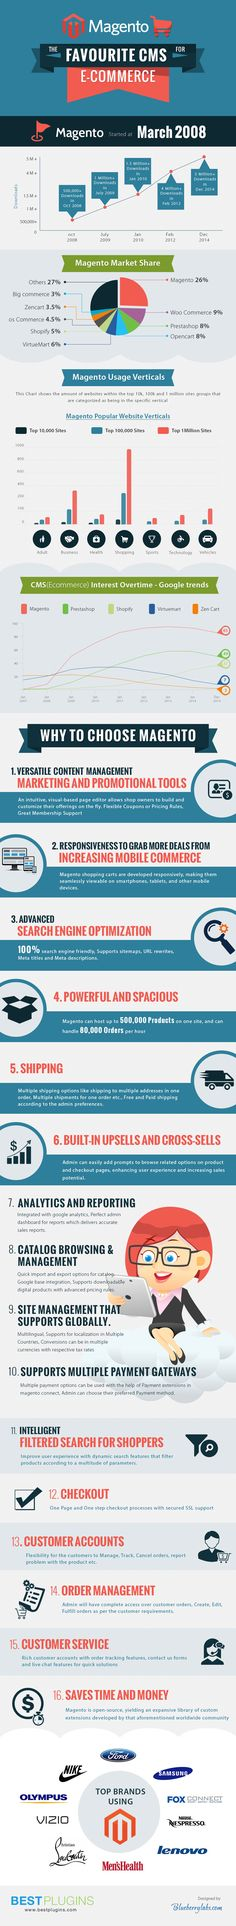 Magento, the cms for ecommerce